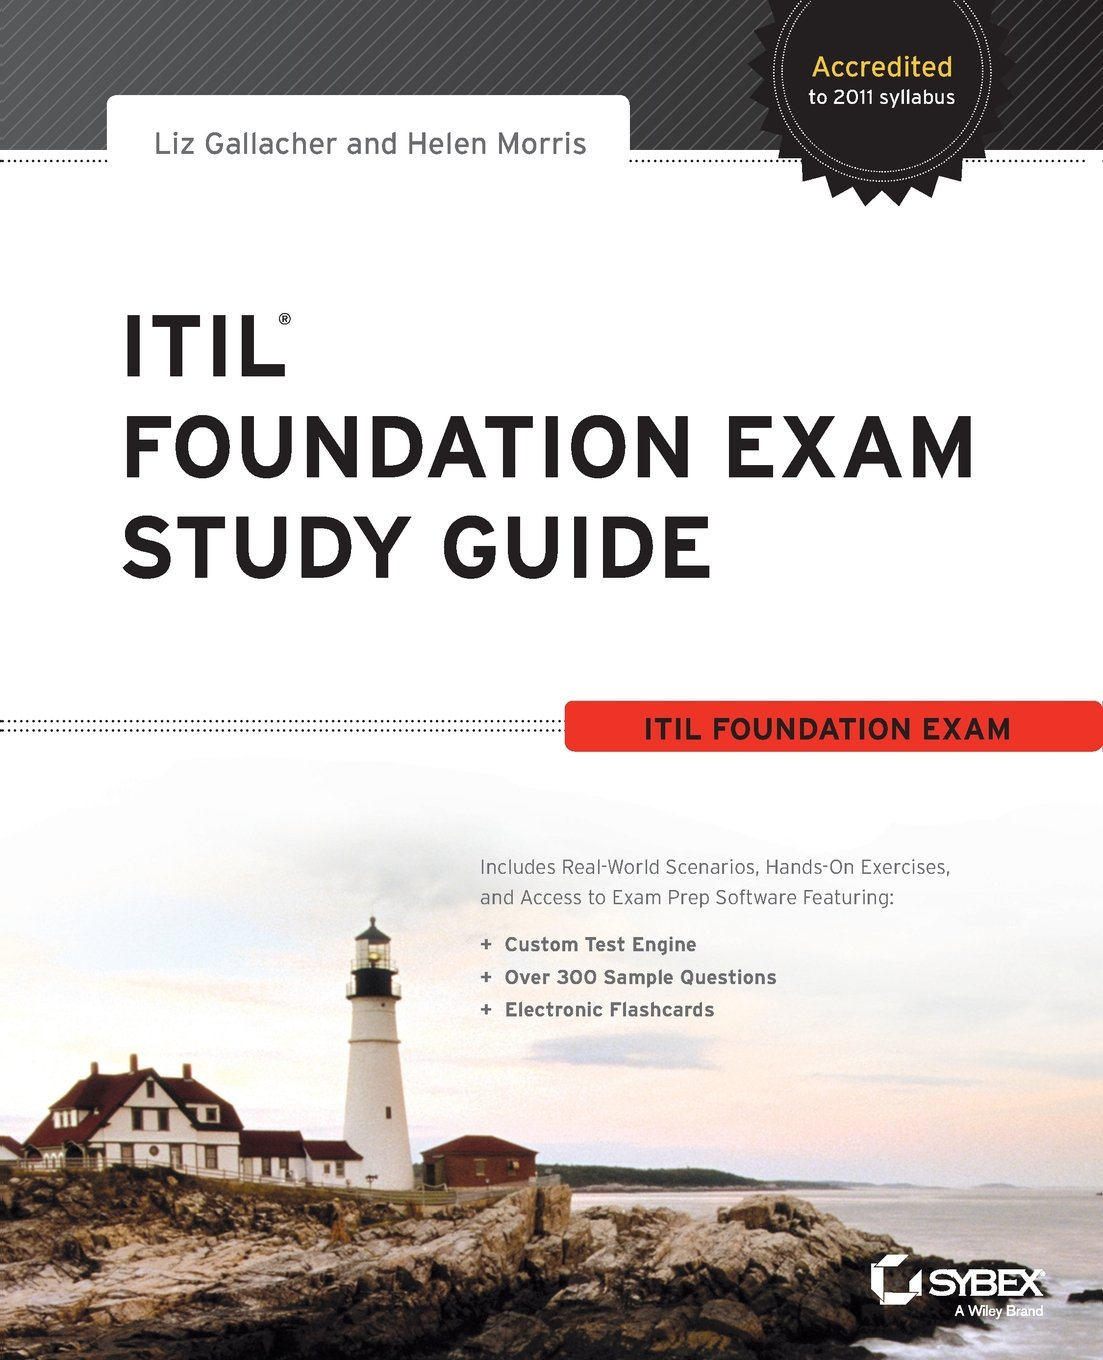 Itil foundation exam study guide amazon liz gallacher itil foundation exam study guide amazon liz gallacher helen morris gallacher 8601401097846 books xflitez Images